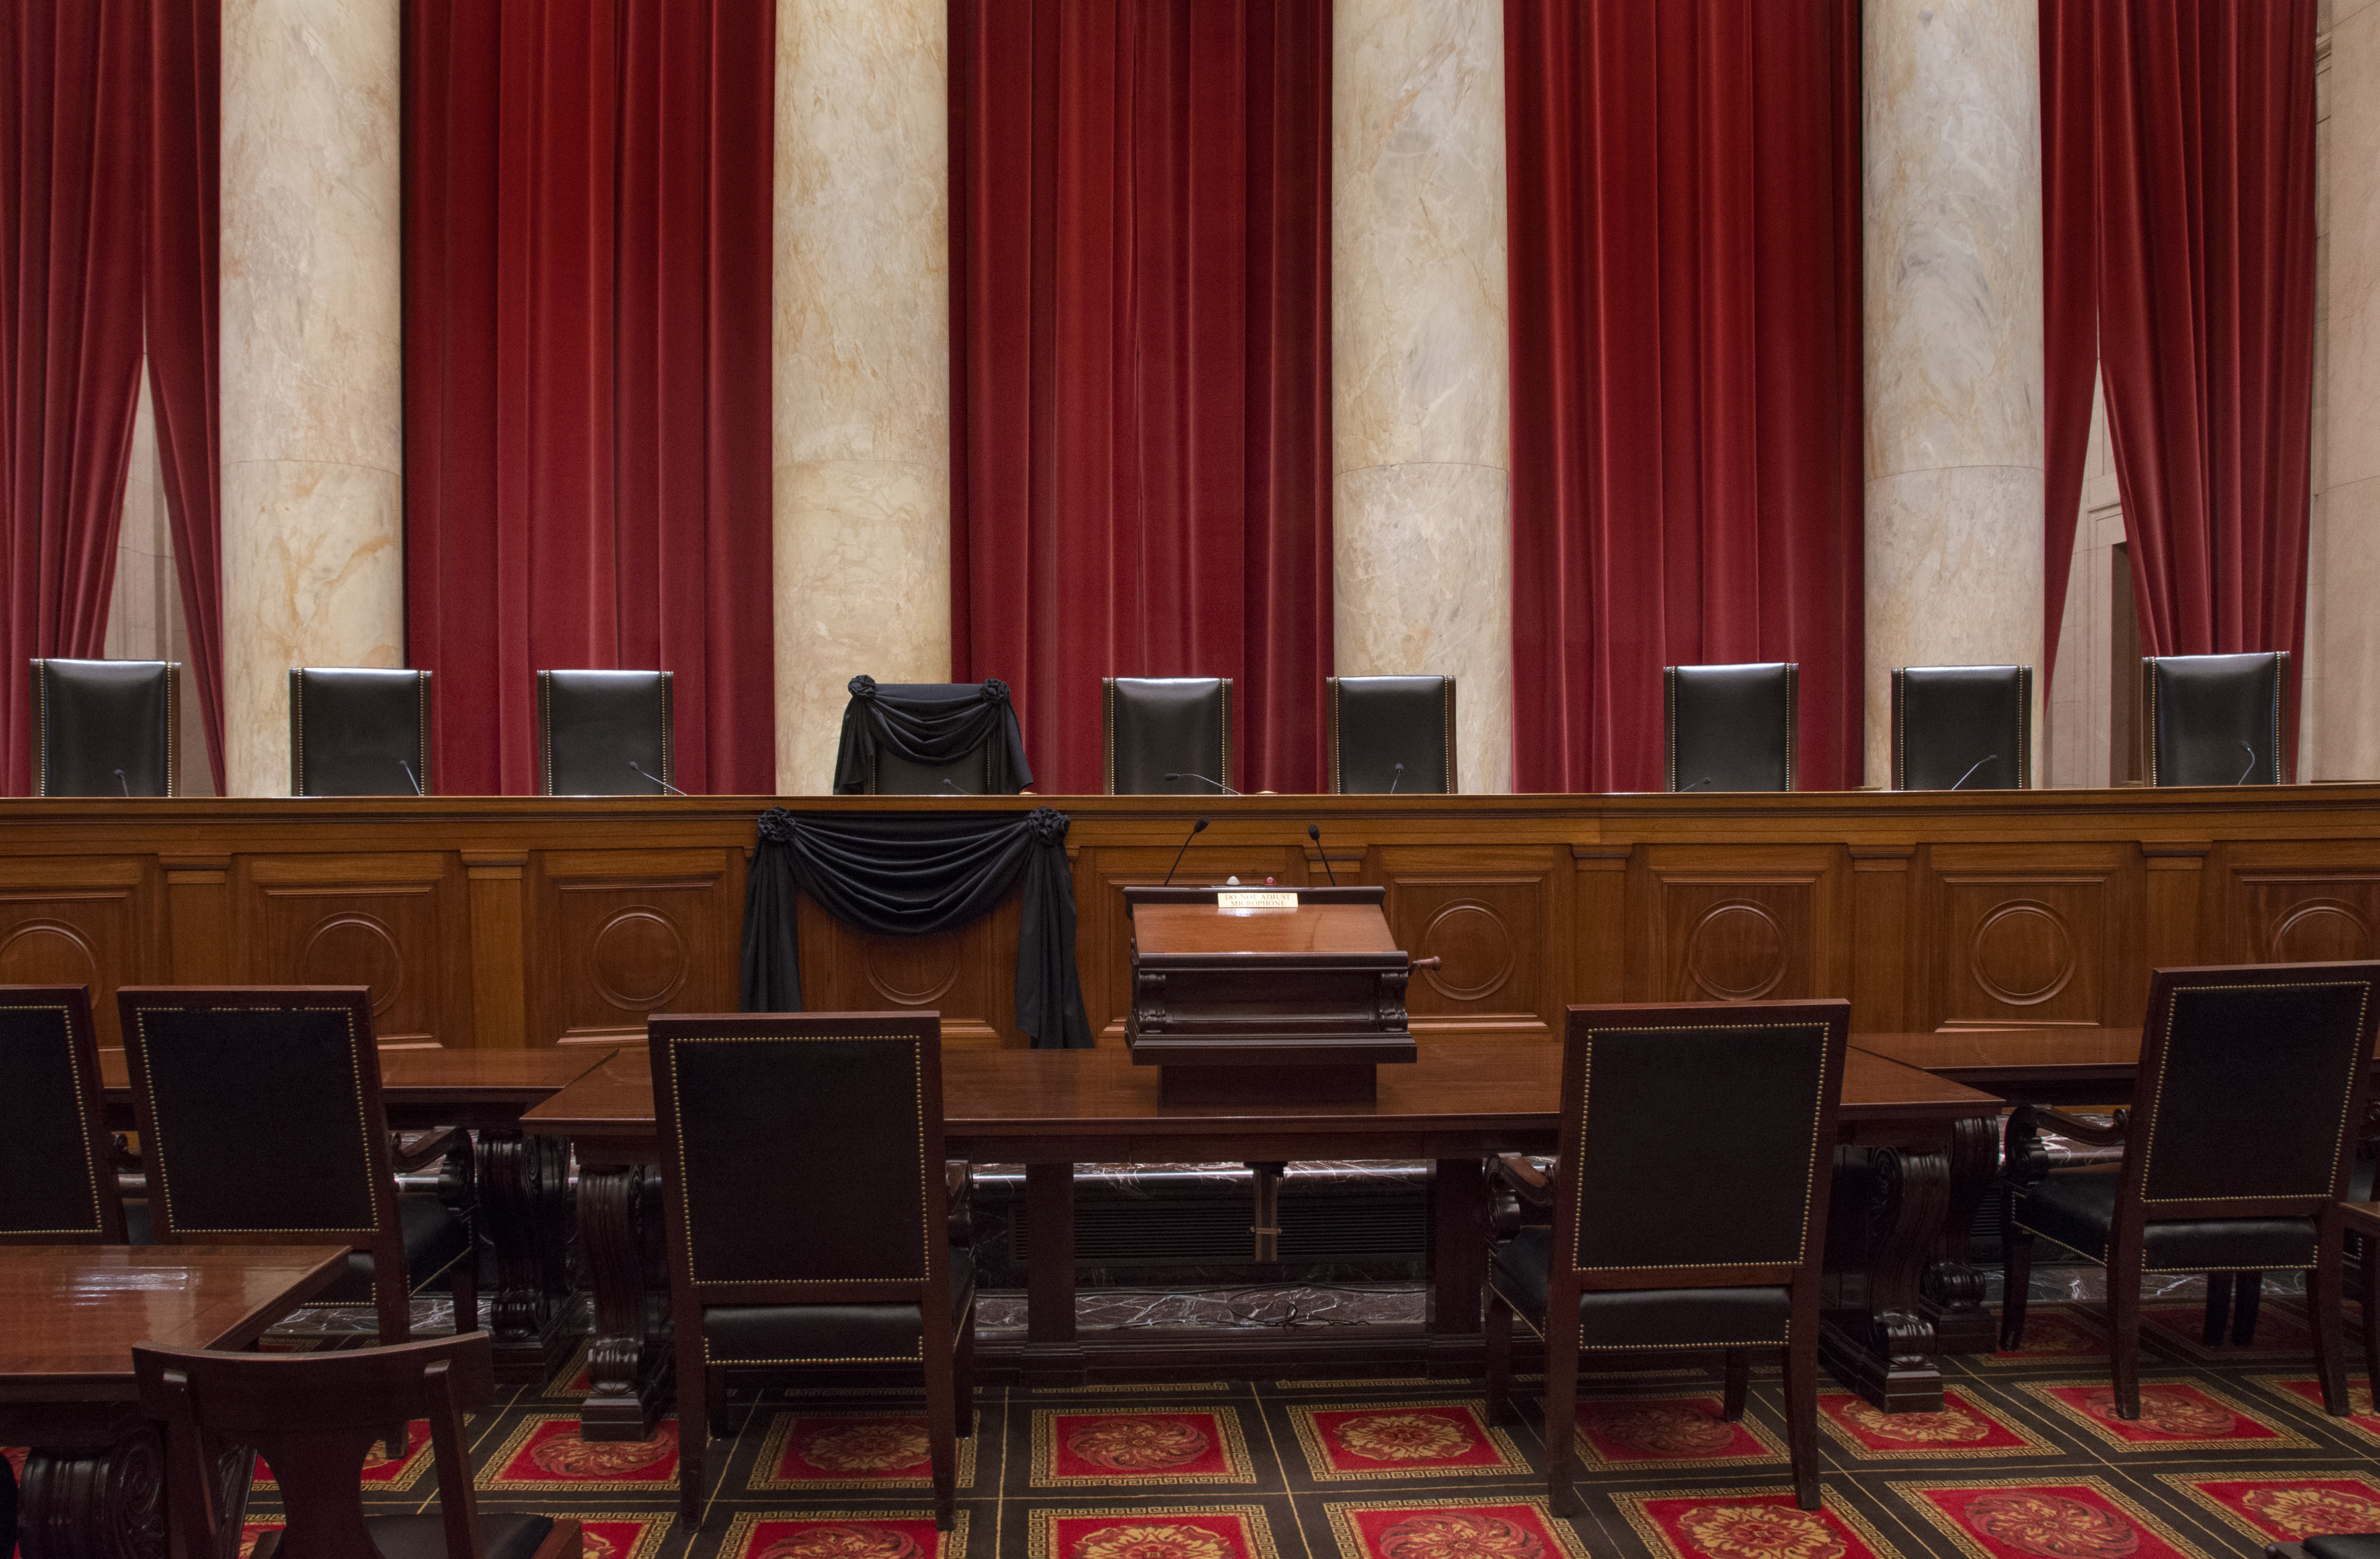 Associate Justice Antonin Scalia's bench chair and the bench in front of his seat are draped in black in the Courtroom of the Supreme Court following his Feb. 13, 2016 death.